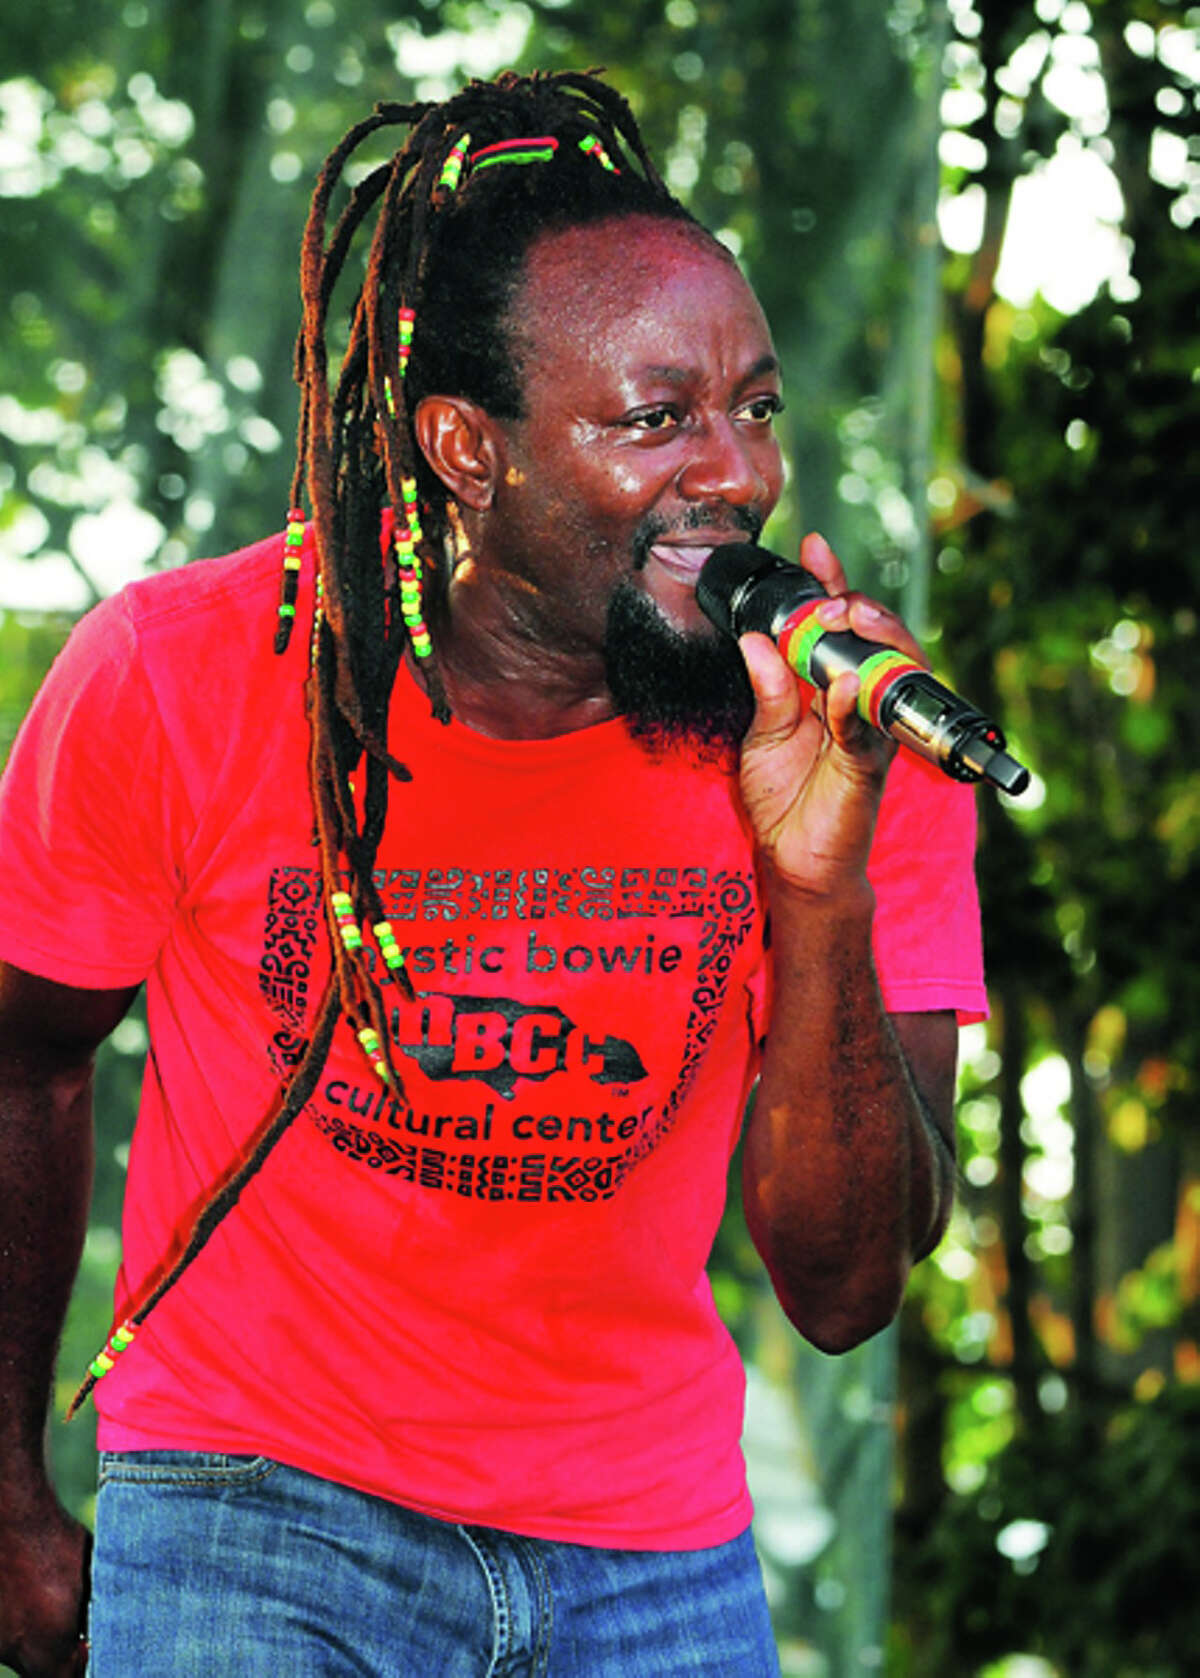 Mystic Bowie will be among the performers when the Westside Reggae Festival returns to Ives Concert Park in Danbury on Saturday, Aug. 13.